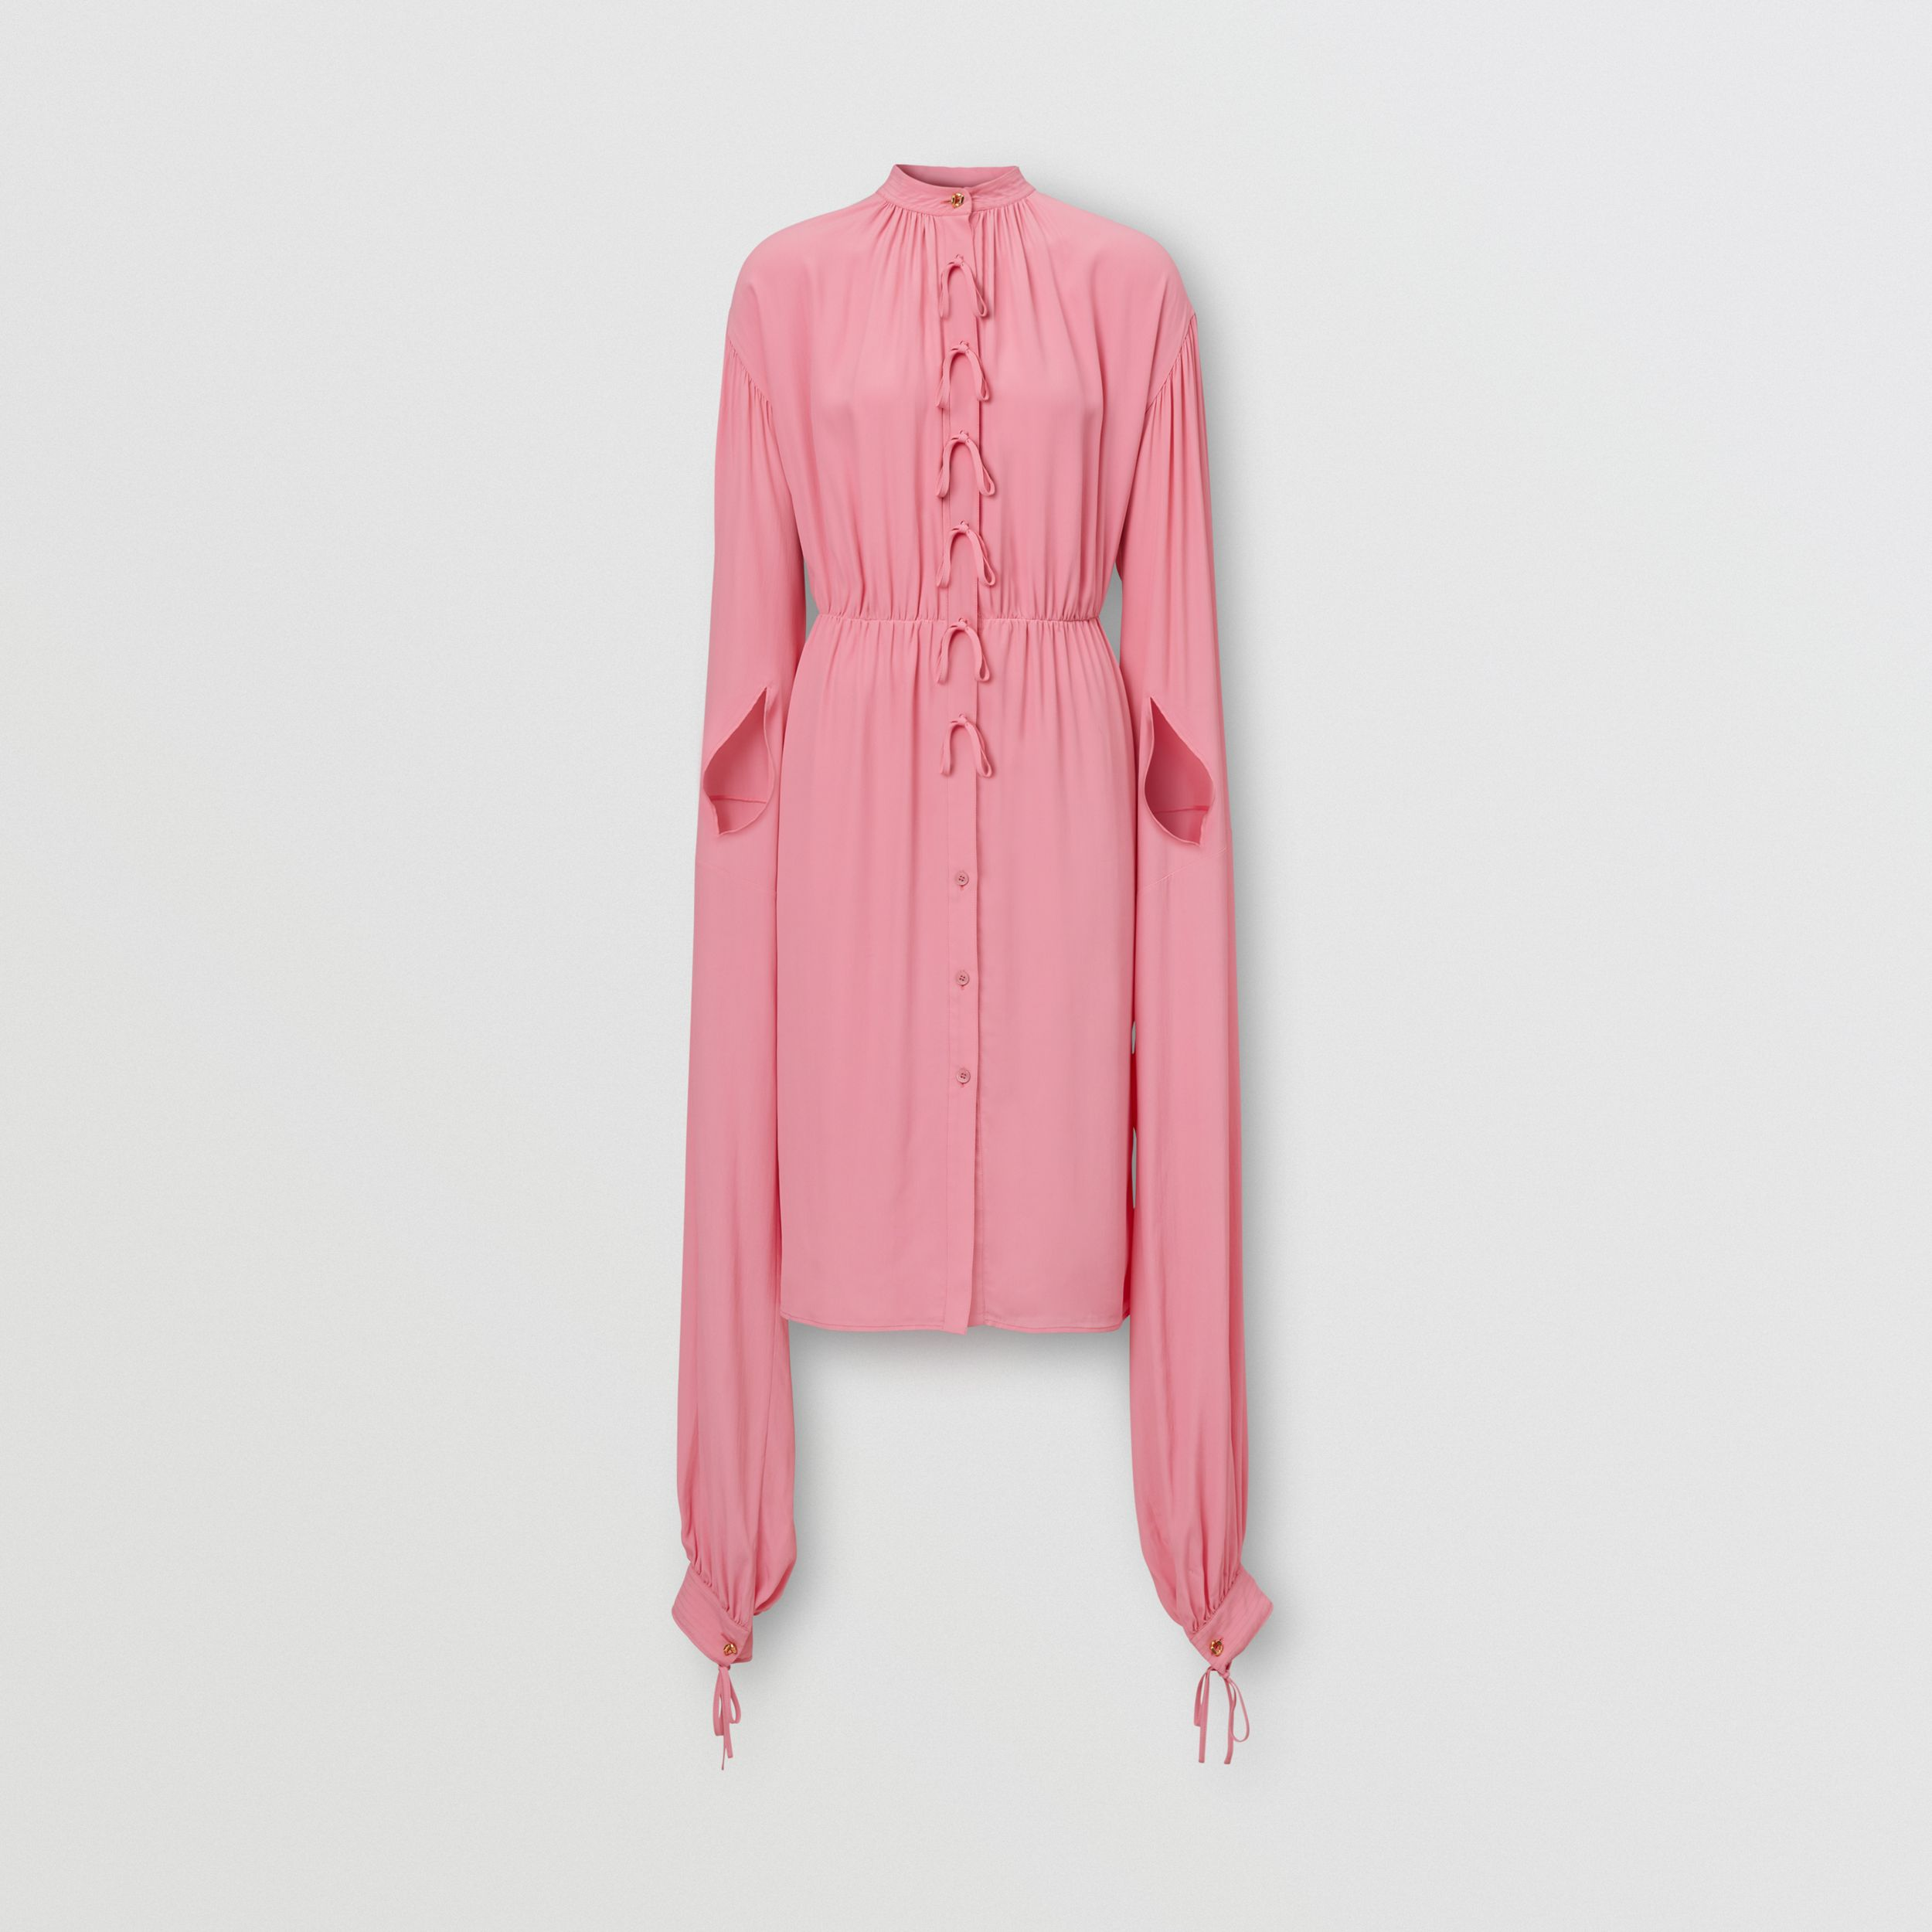 Loop-back Sleeve Silk Crepe De Chine Dress in Bubblegum Pink - Women | Burberry - 4